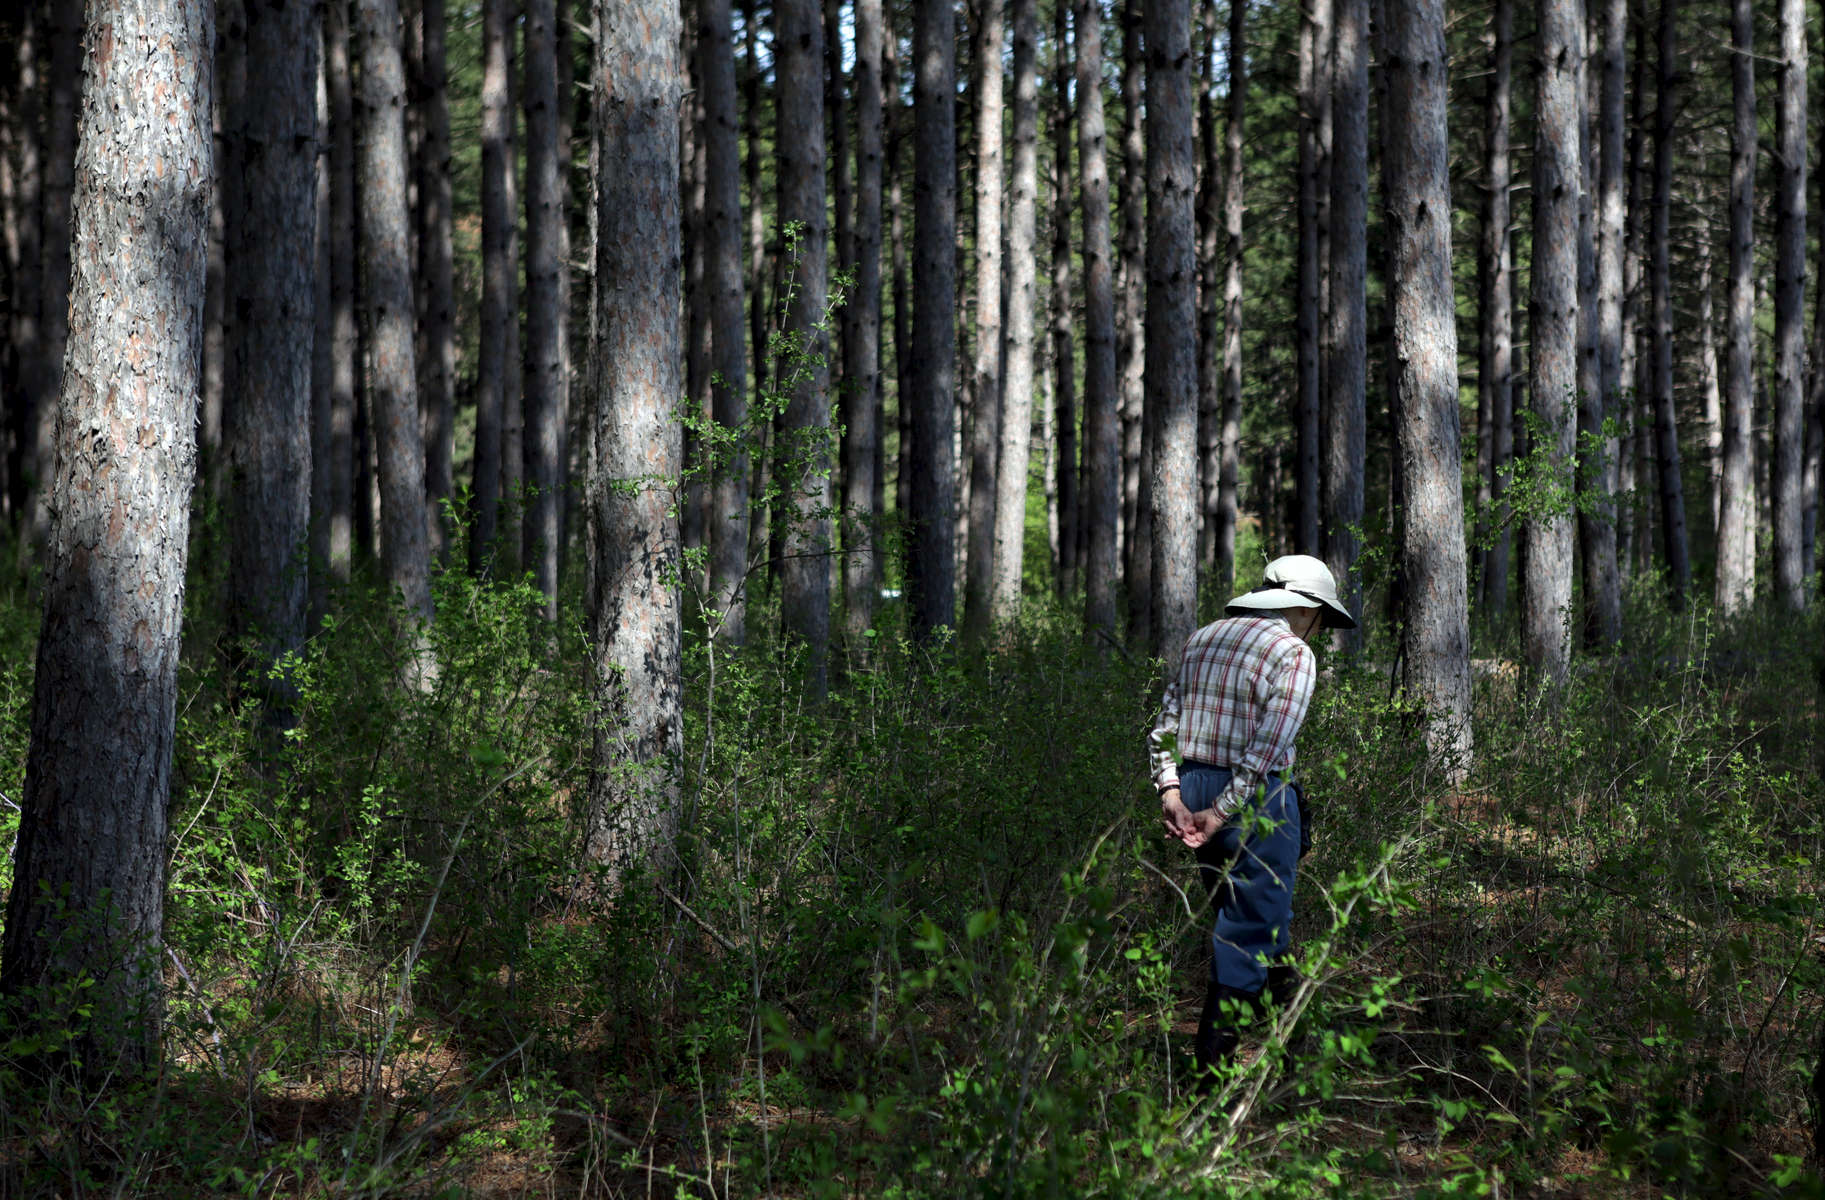 Hope Lea walks through the woods during an orienteering exercise at Belwin Conservancy in Afton, Minn. Hope and her husband Chuck have been volunteering at Belwin for 23 years, both monitoring bluebirds and helping school children with educational programs.